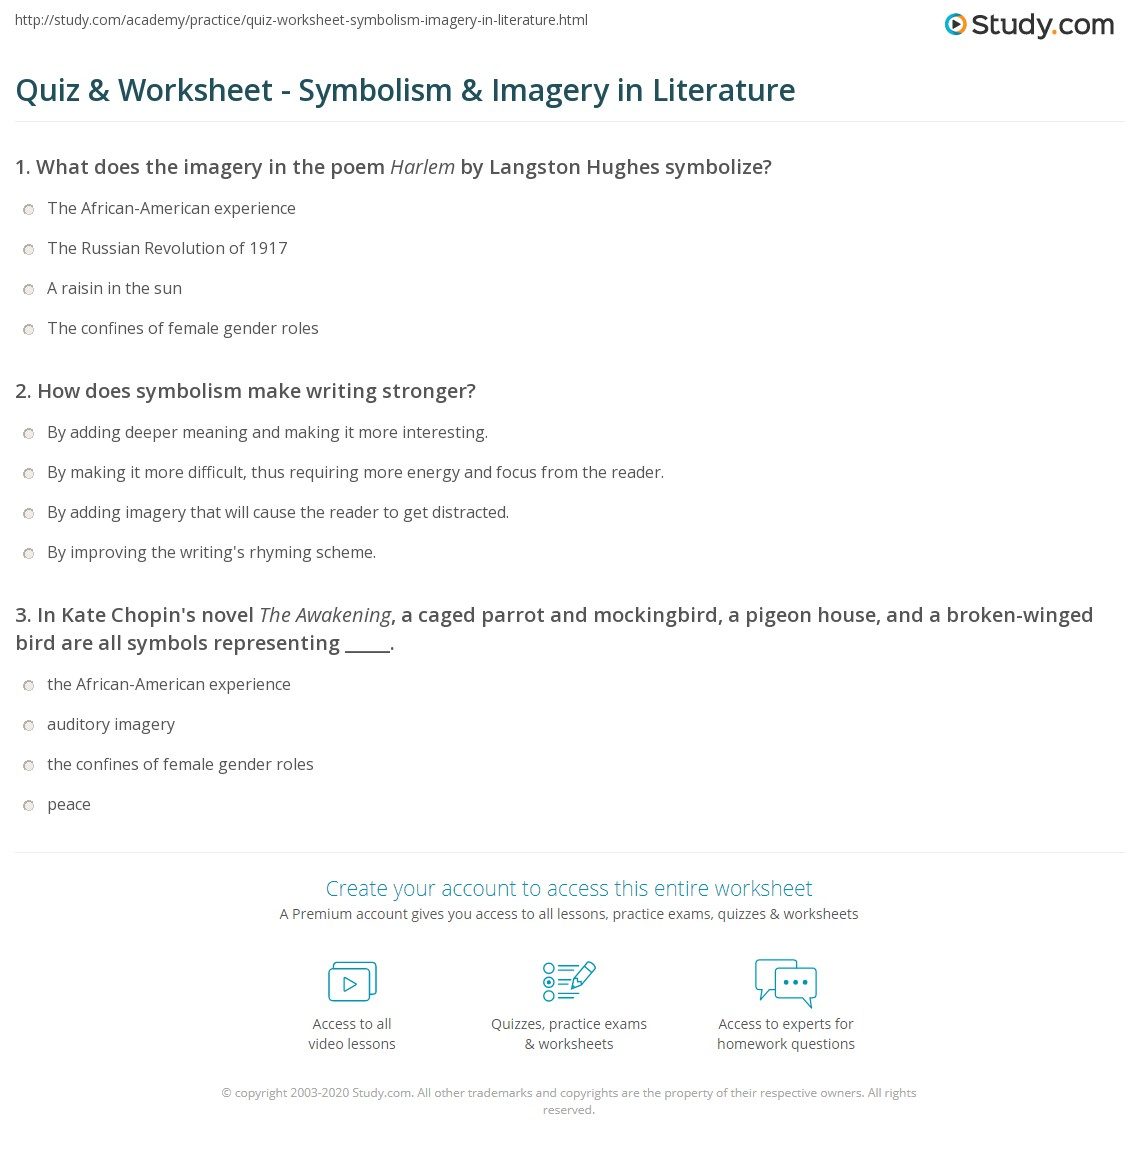 Quiz Worksheet Symbolism Imagery In Literature Study